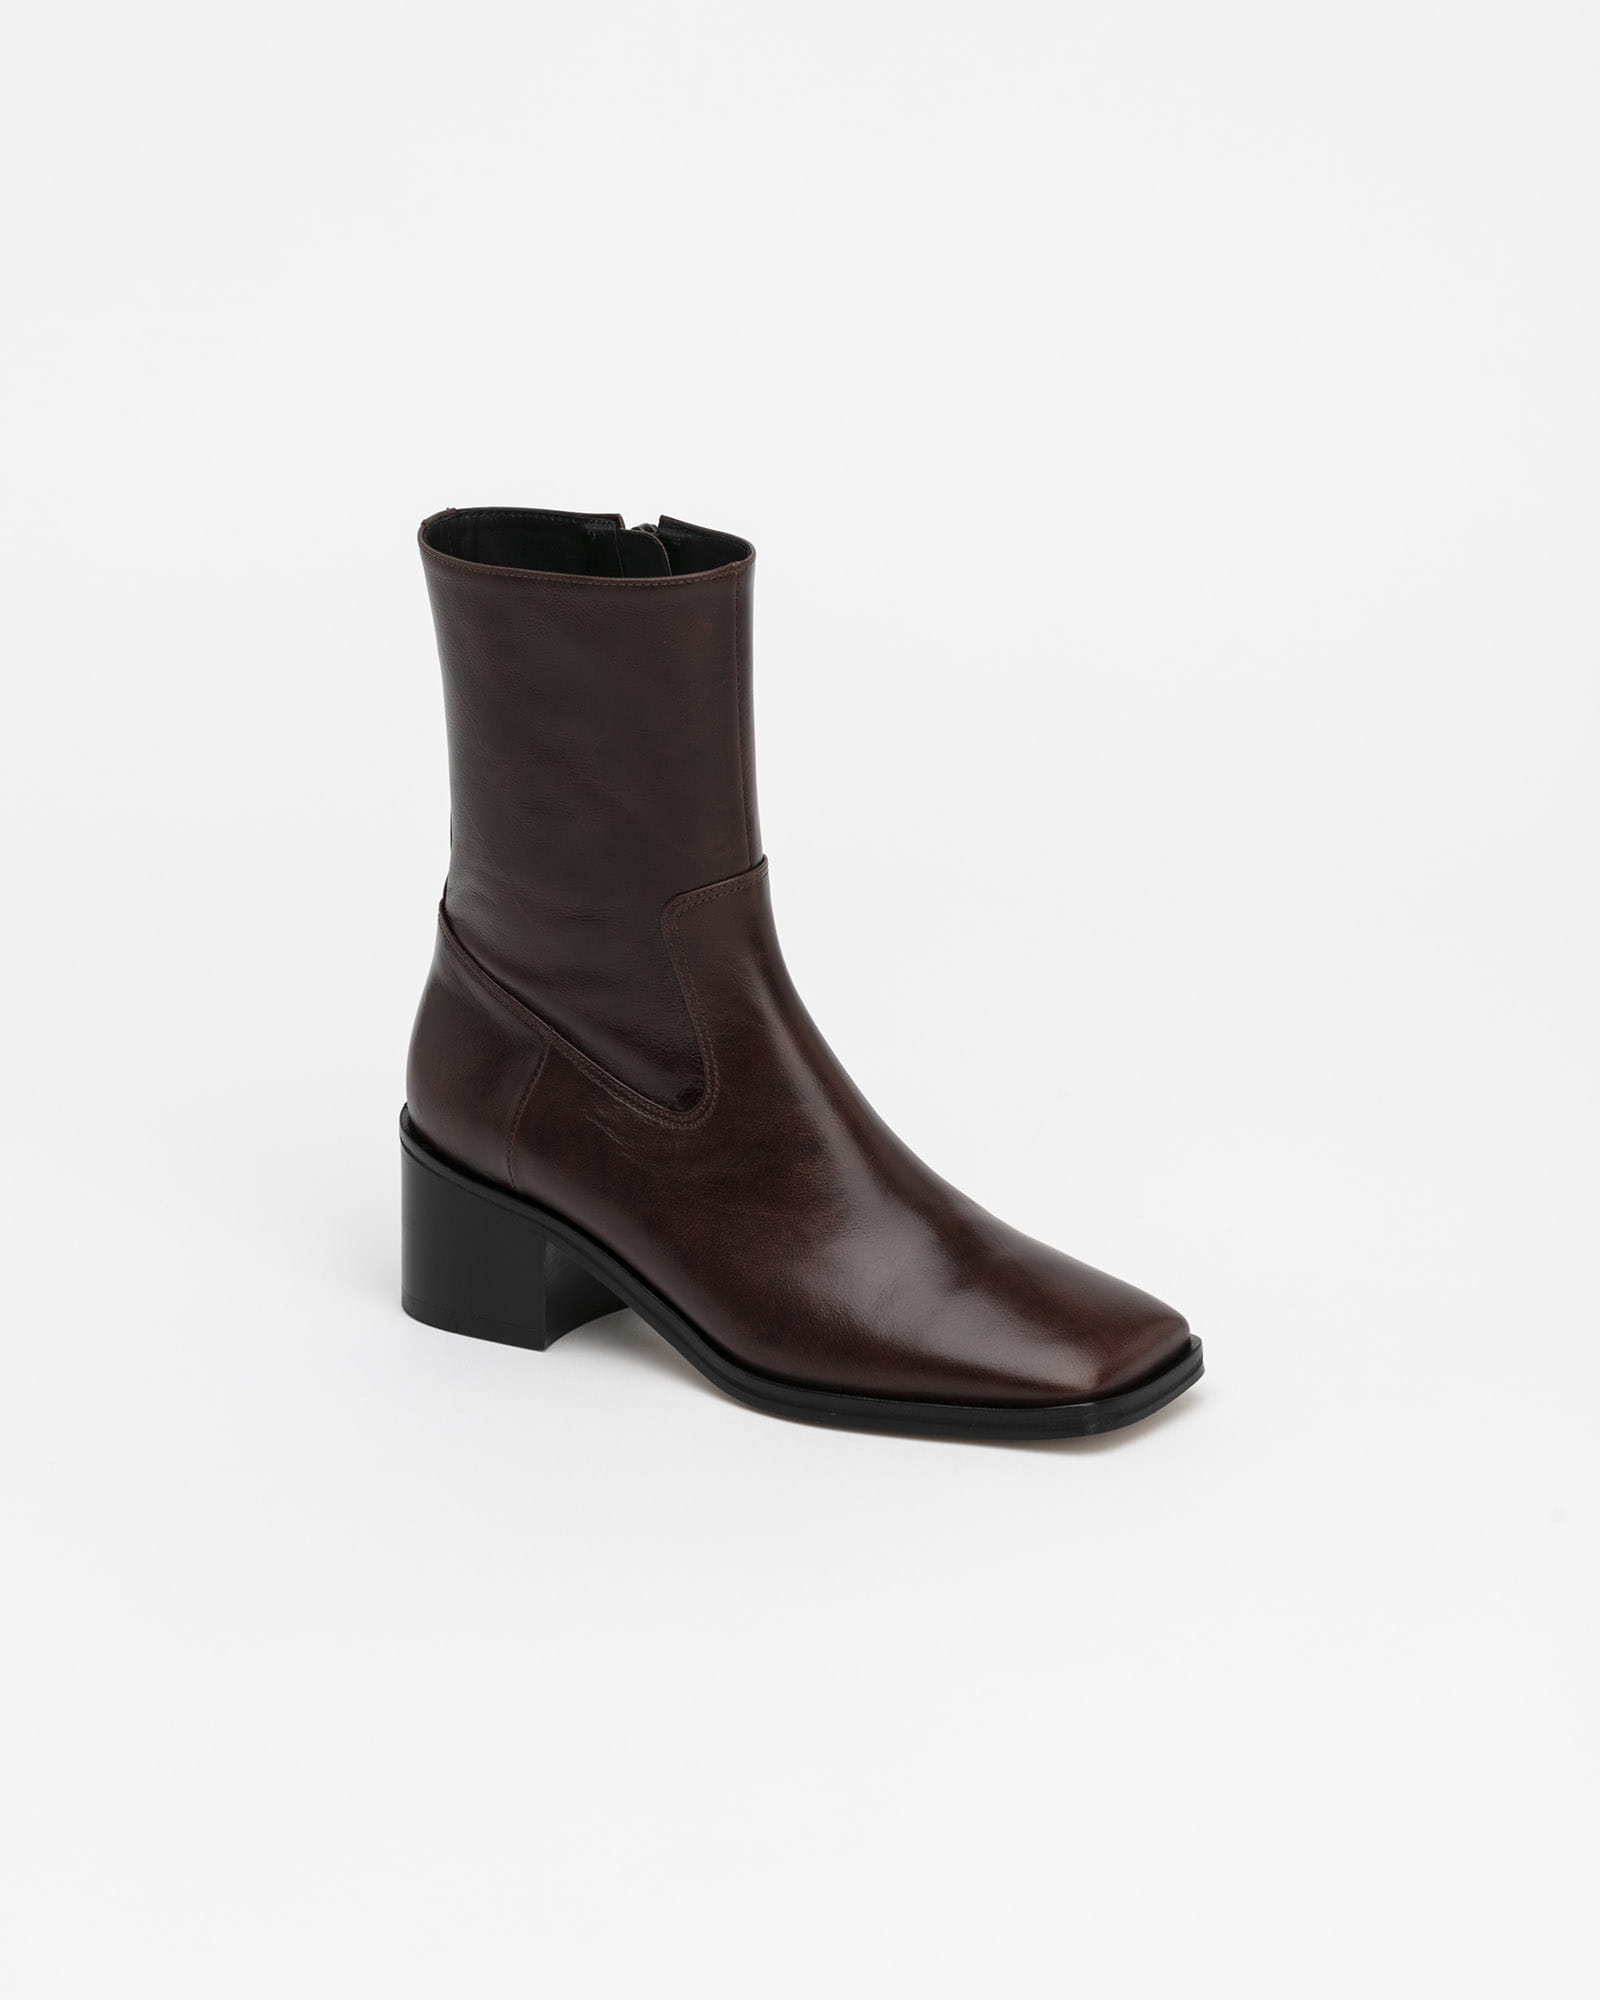 Ramos Boots in Textured Brown